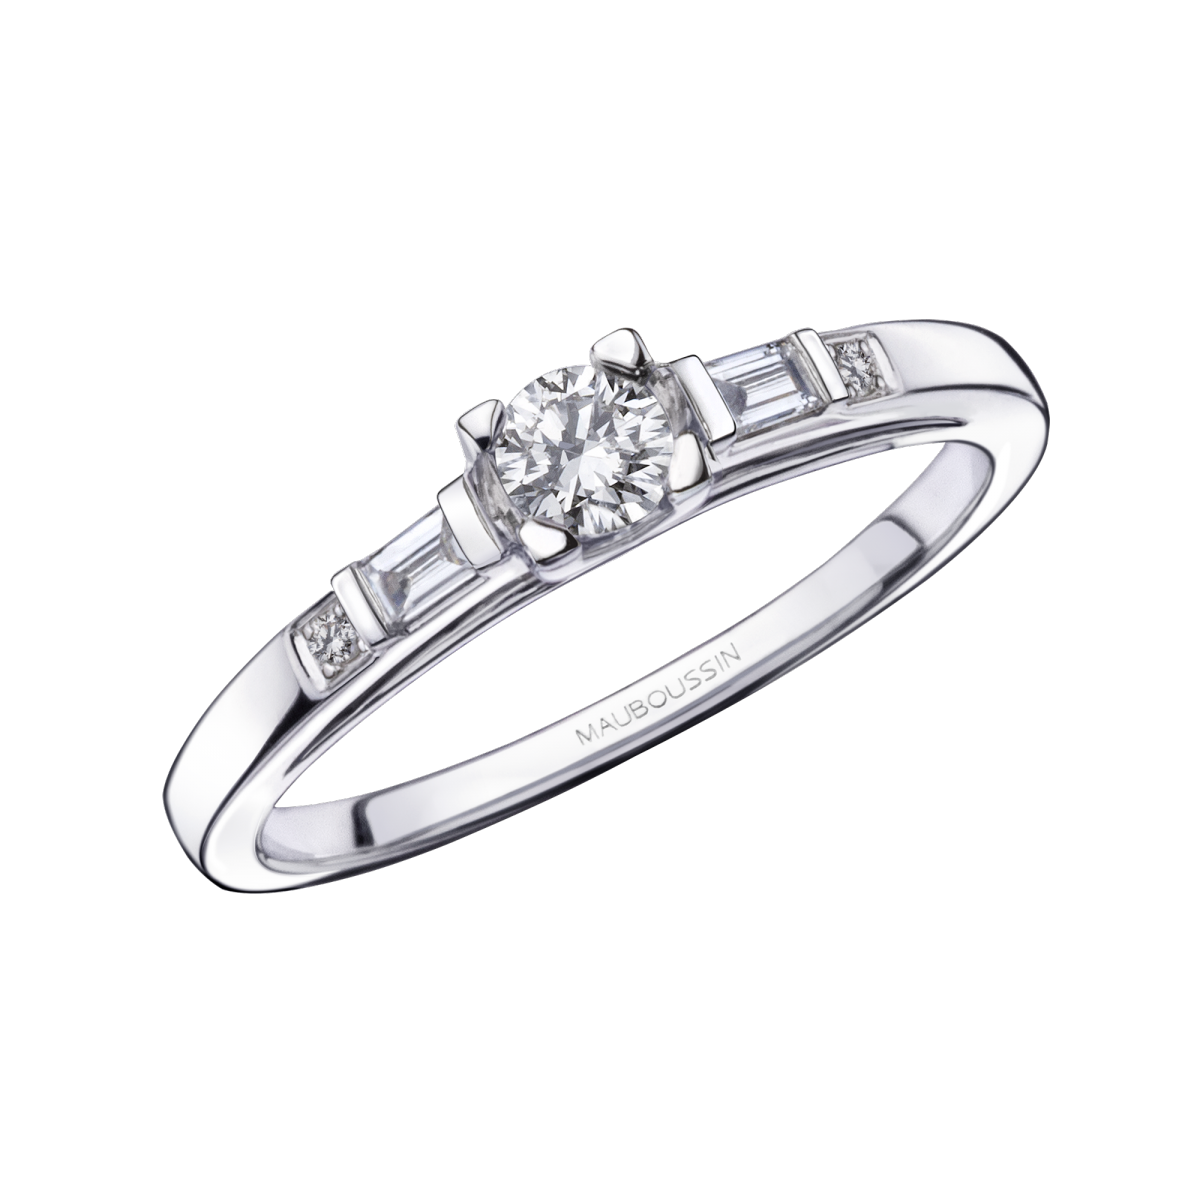 Courtisane N°2 engagement ring, white gold and diamond